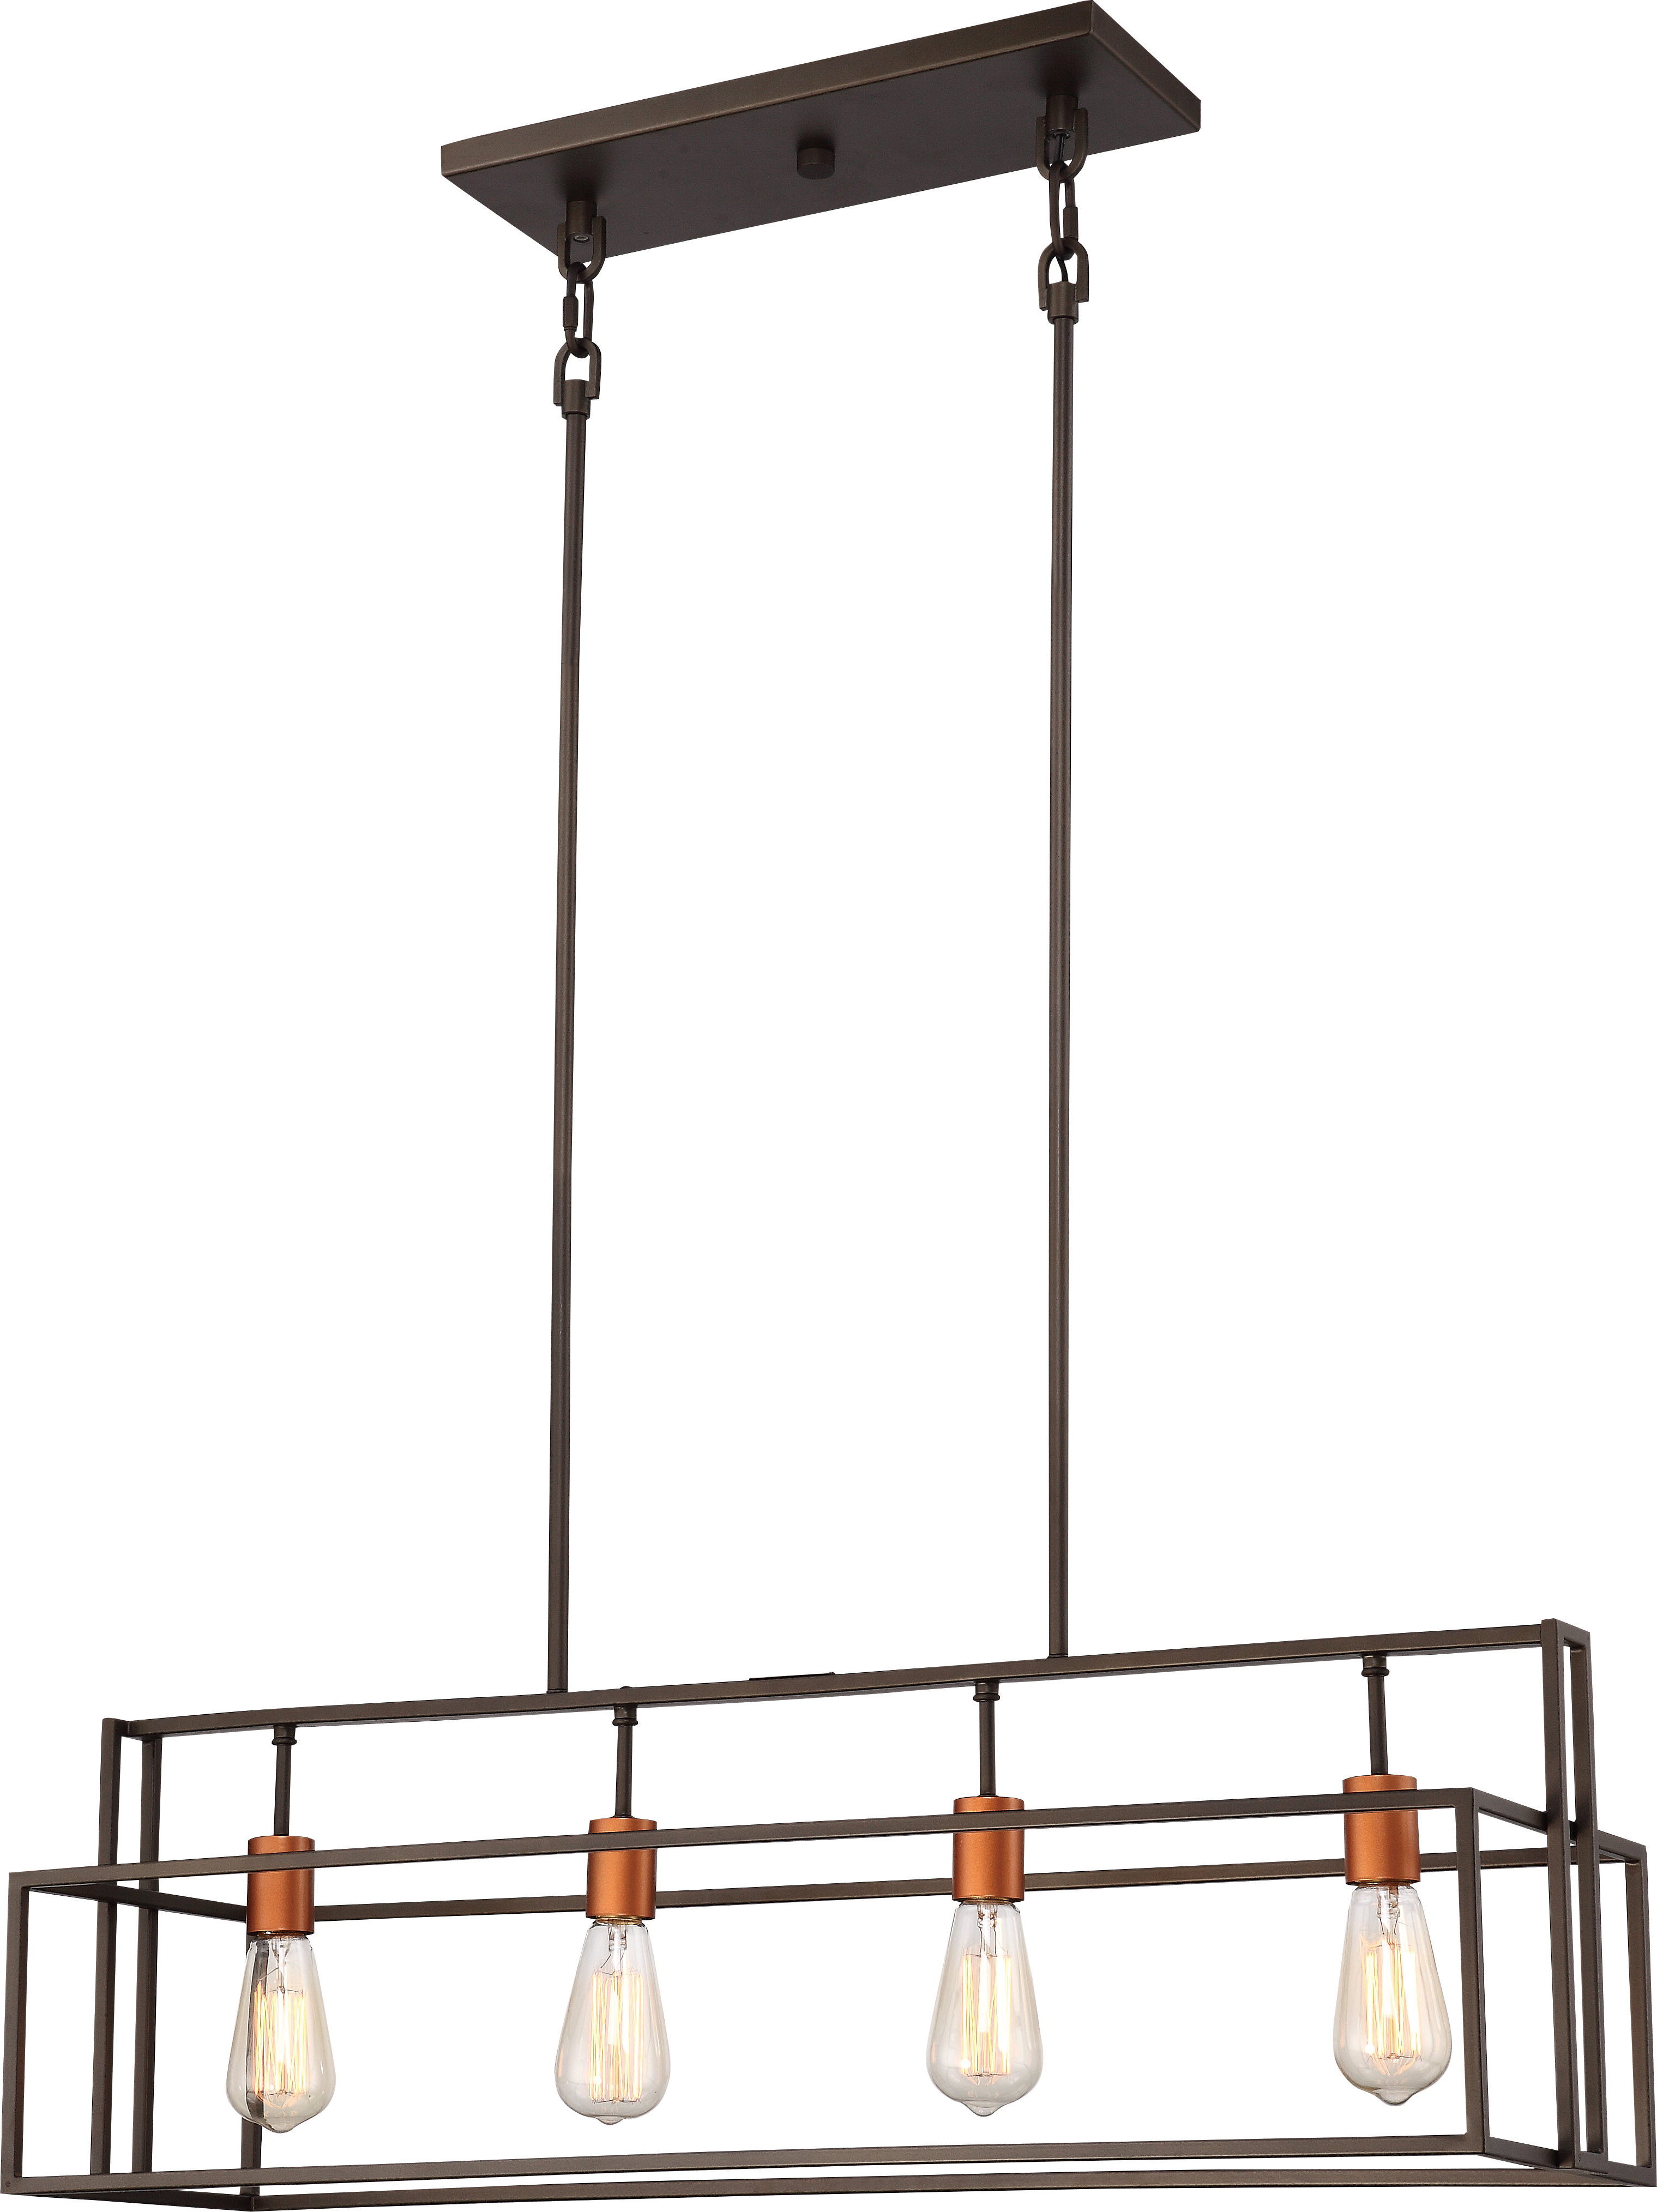 Well Liked Bouvet 5 Light Kitchen Island Linear Pendants Inside Jefferson 4 Light Kitchen Island Linear Pendant (View 19 of 20)